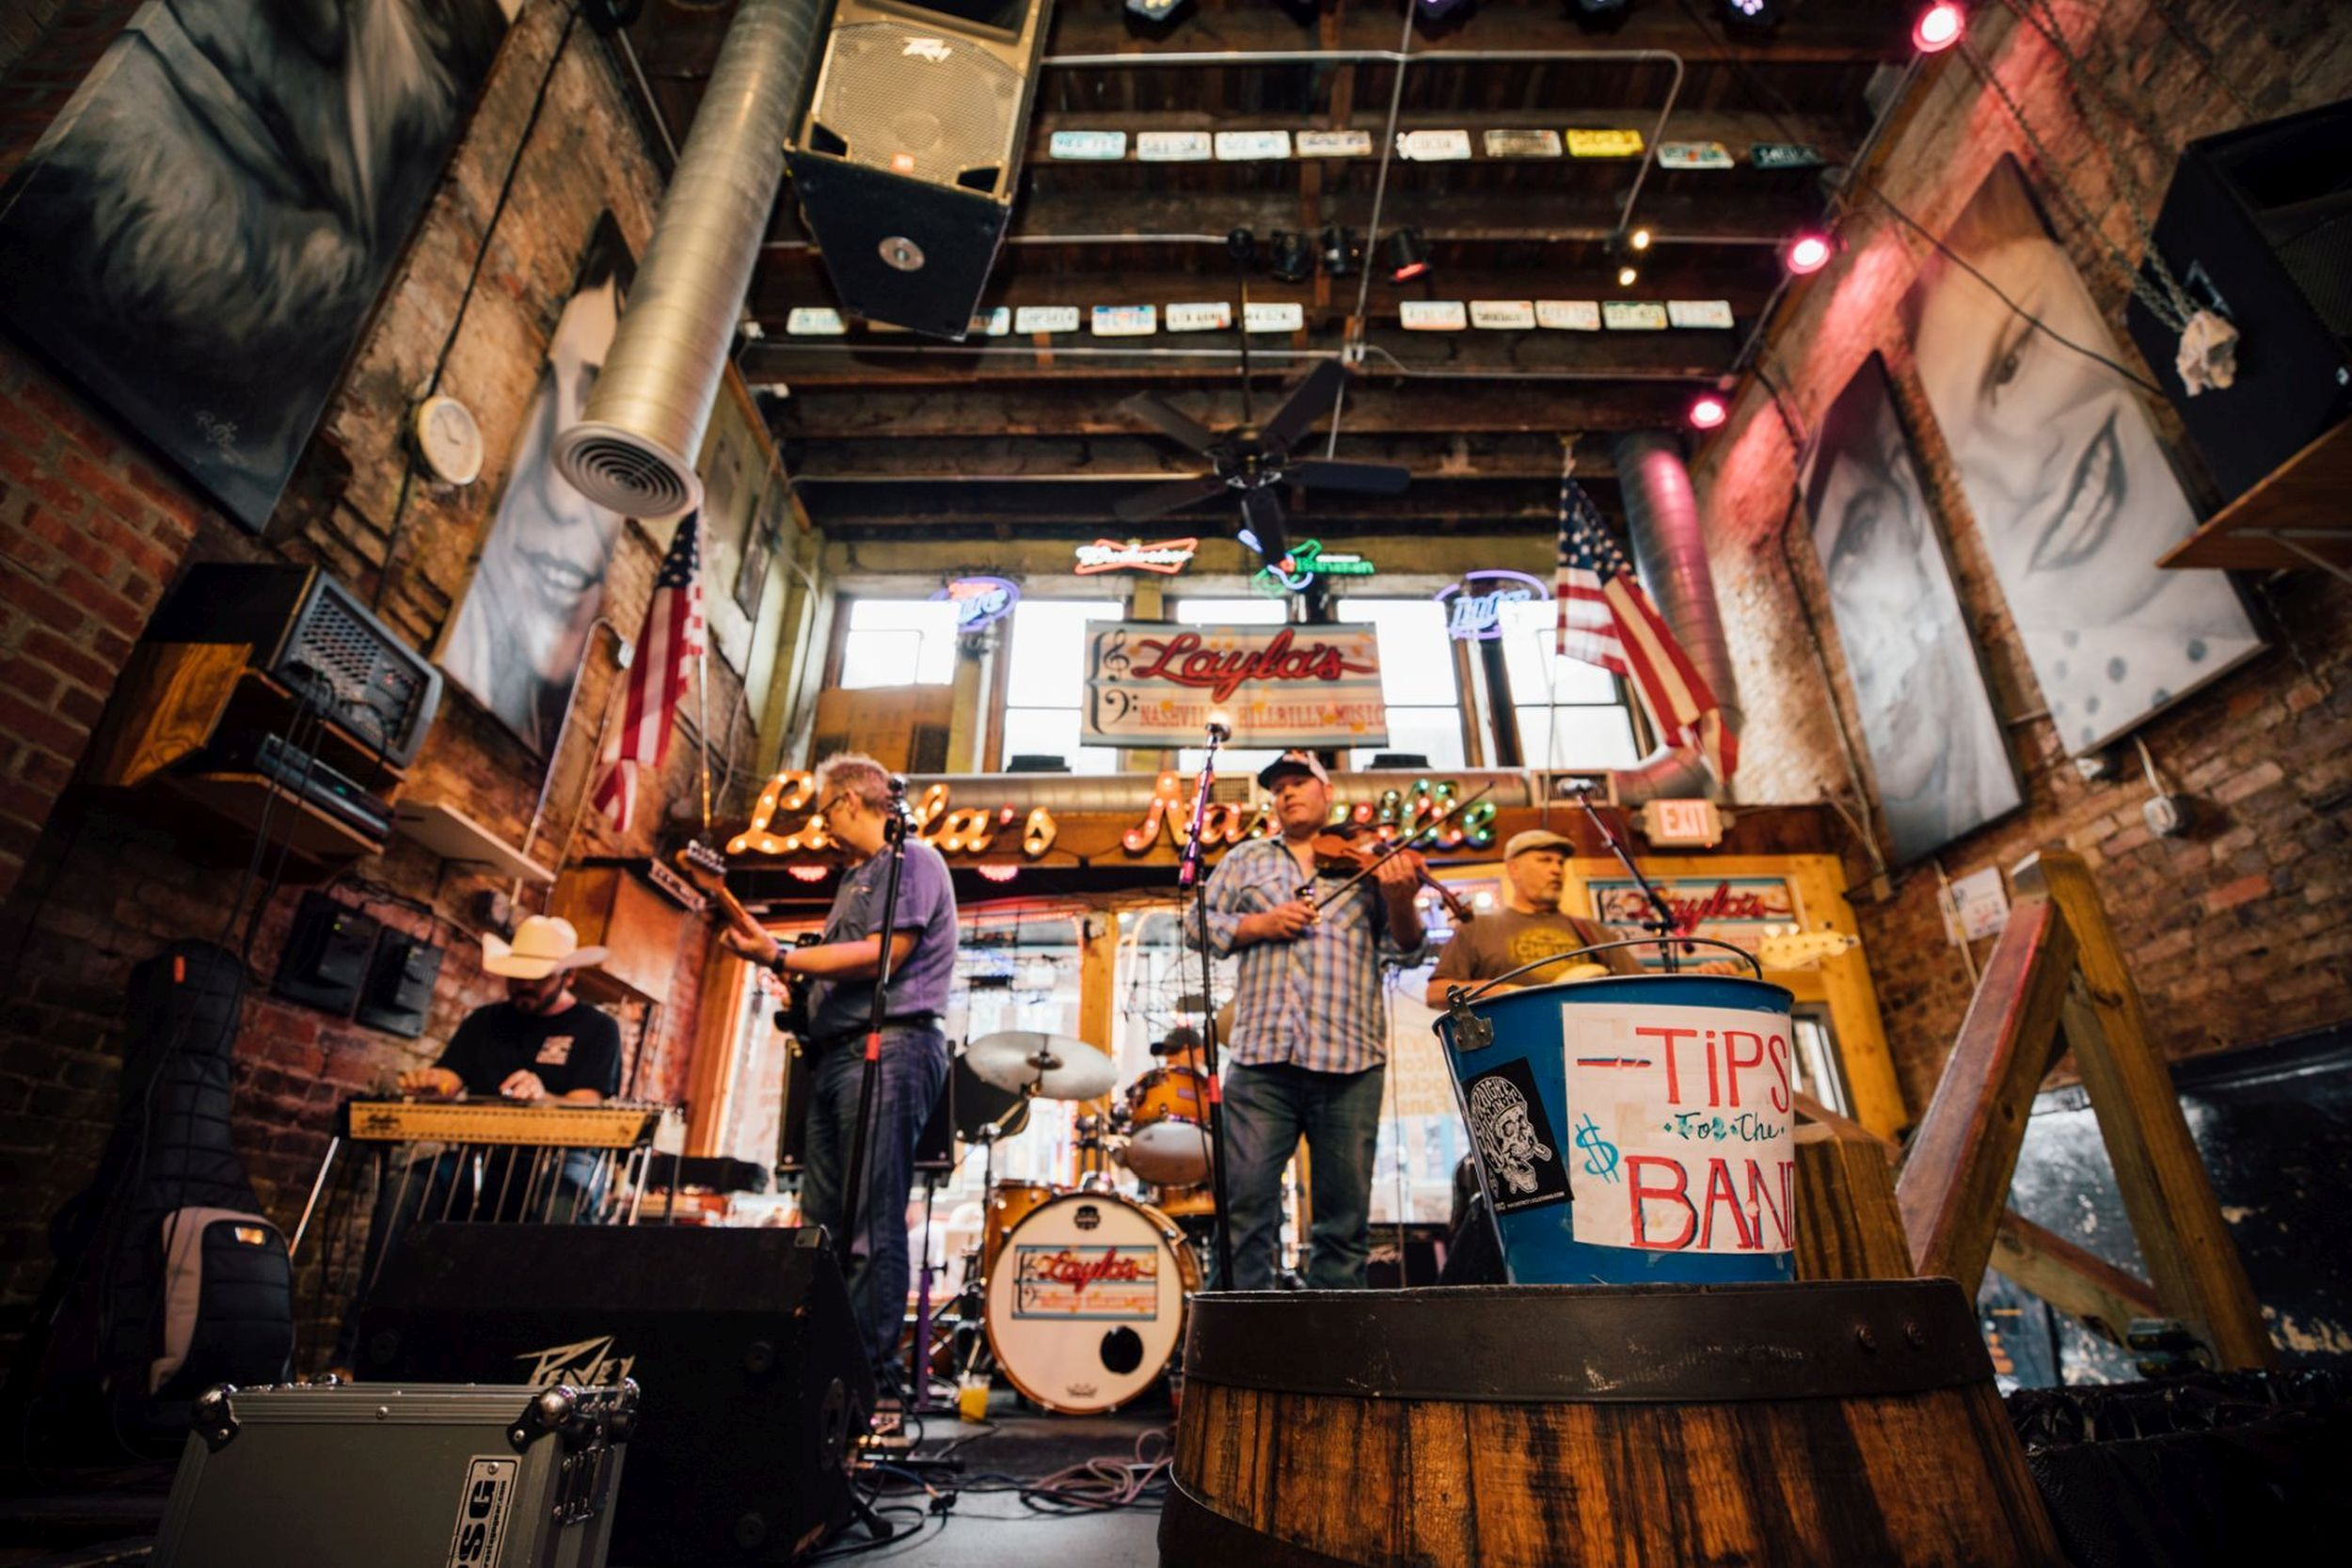 Nashville: Why the Music City is grooving to a foodie beat